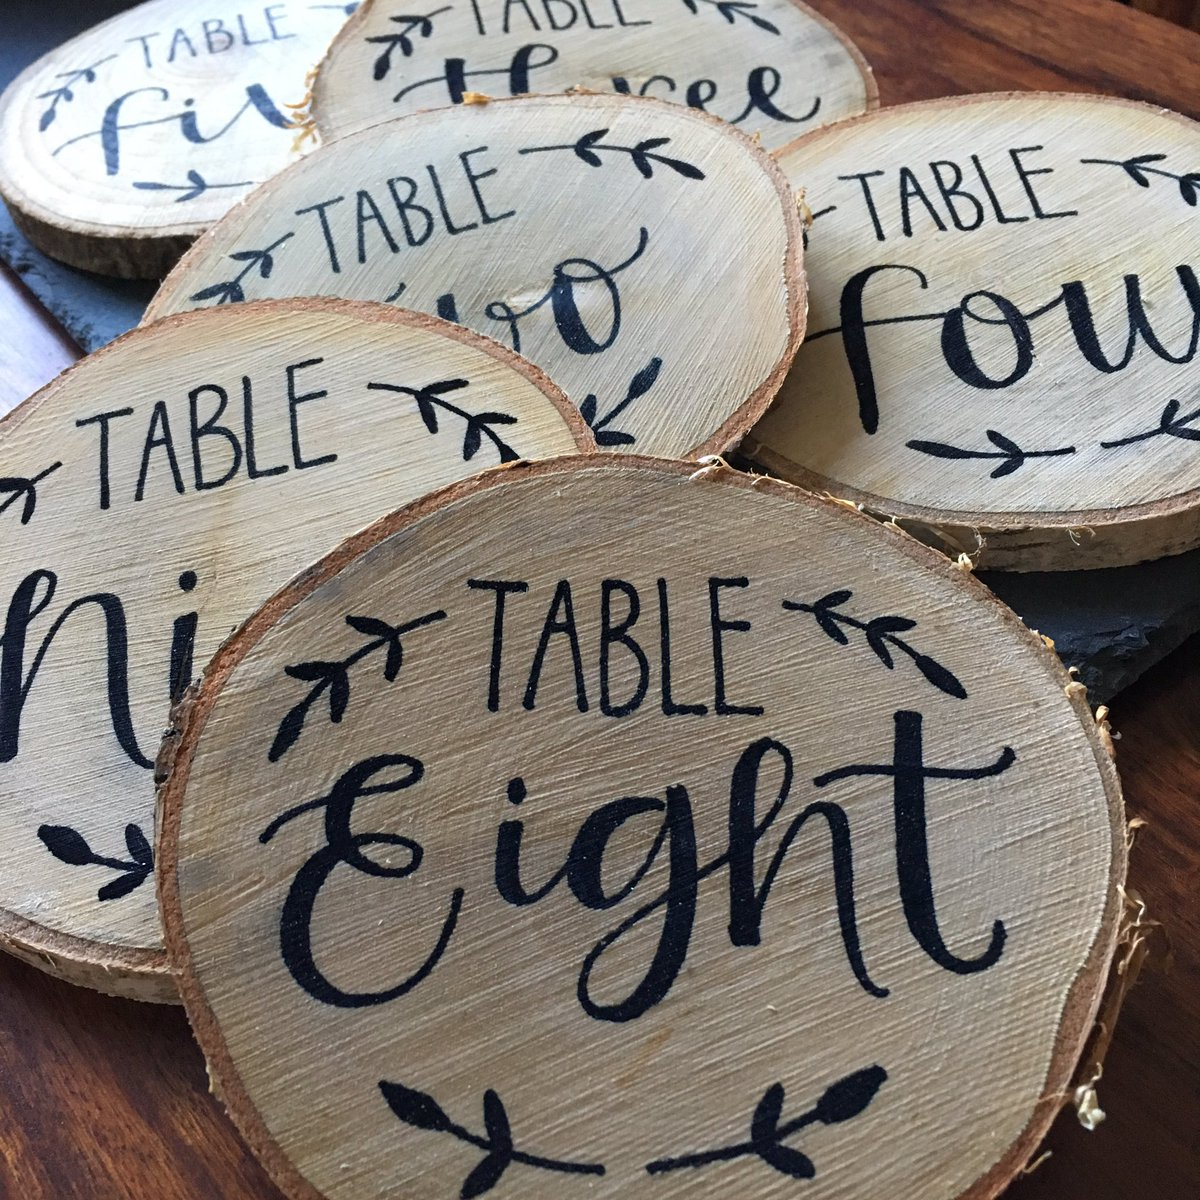 Hi #weddinghour been painting lots of #wood #tablenumbers for orders this week!  https://www. etsy.com/uk/listing/524 482055/rustic-wood-table-numbers &nbsp; …  #bride #weddingdecor #tabledecor<br>http://pic.twitter.com/zN0qk49knV